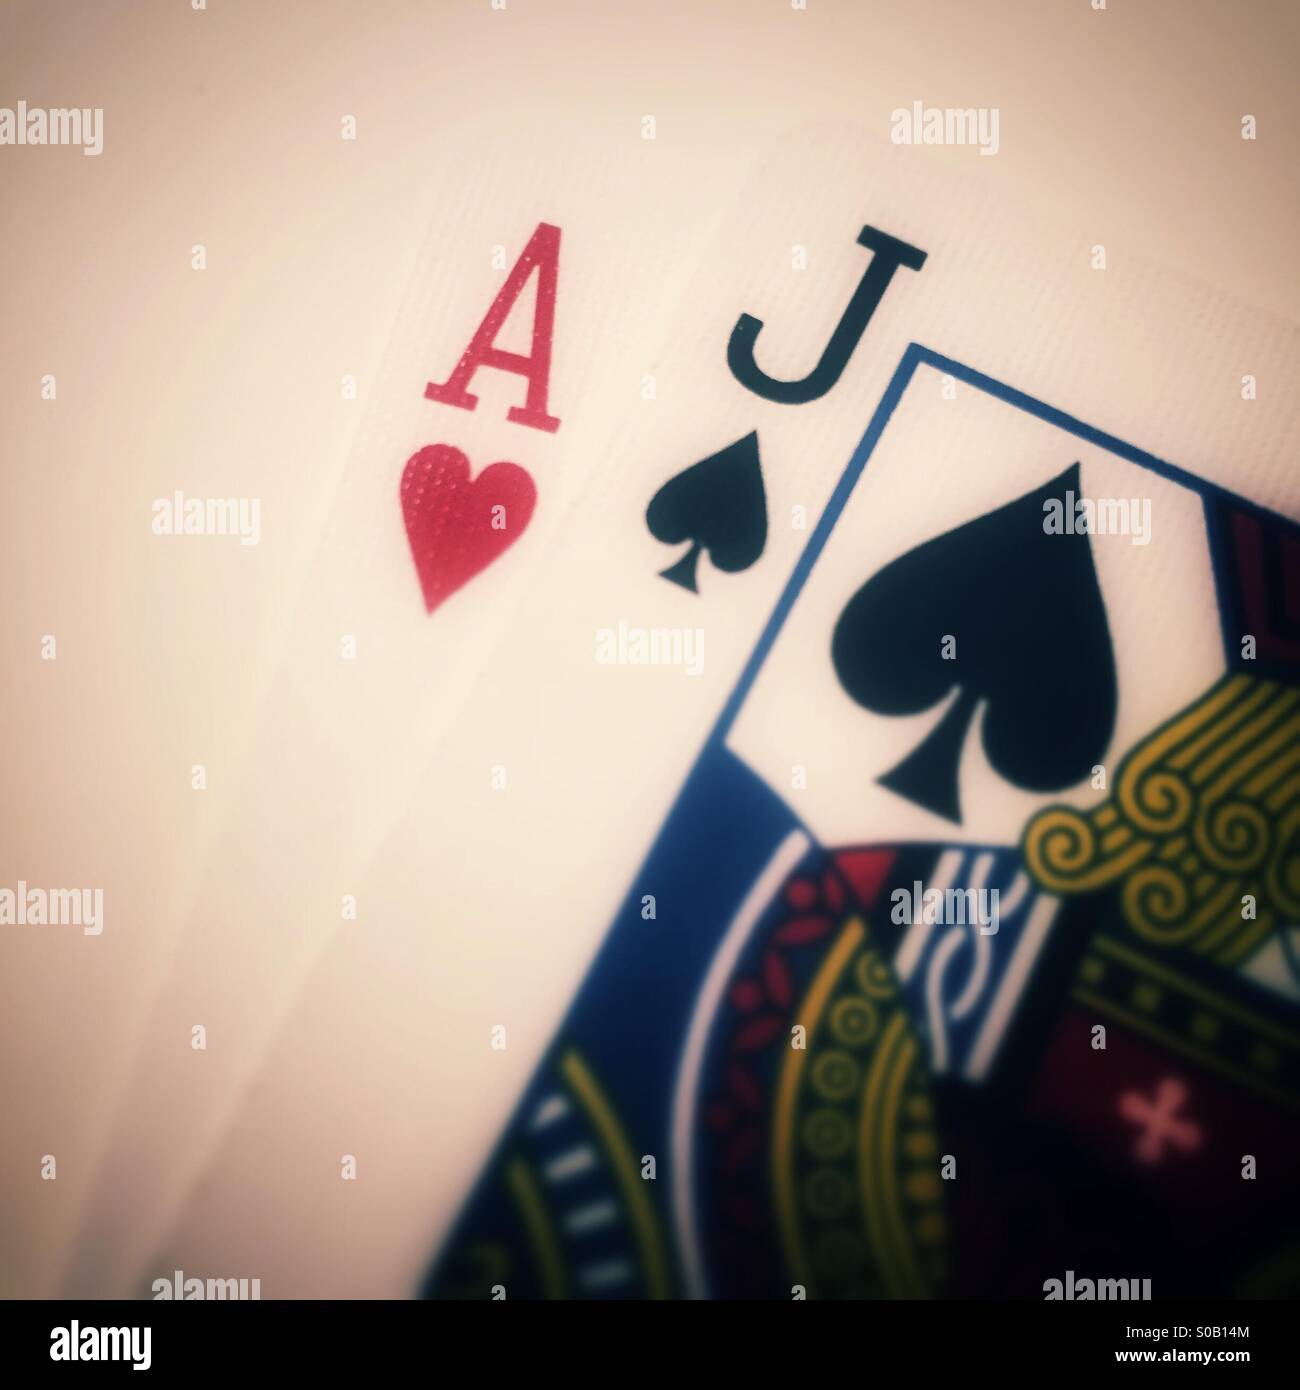 Blackjack - Stock Image